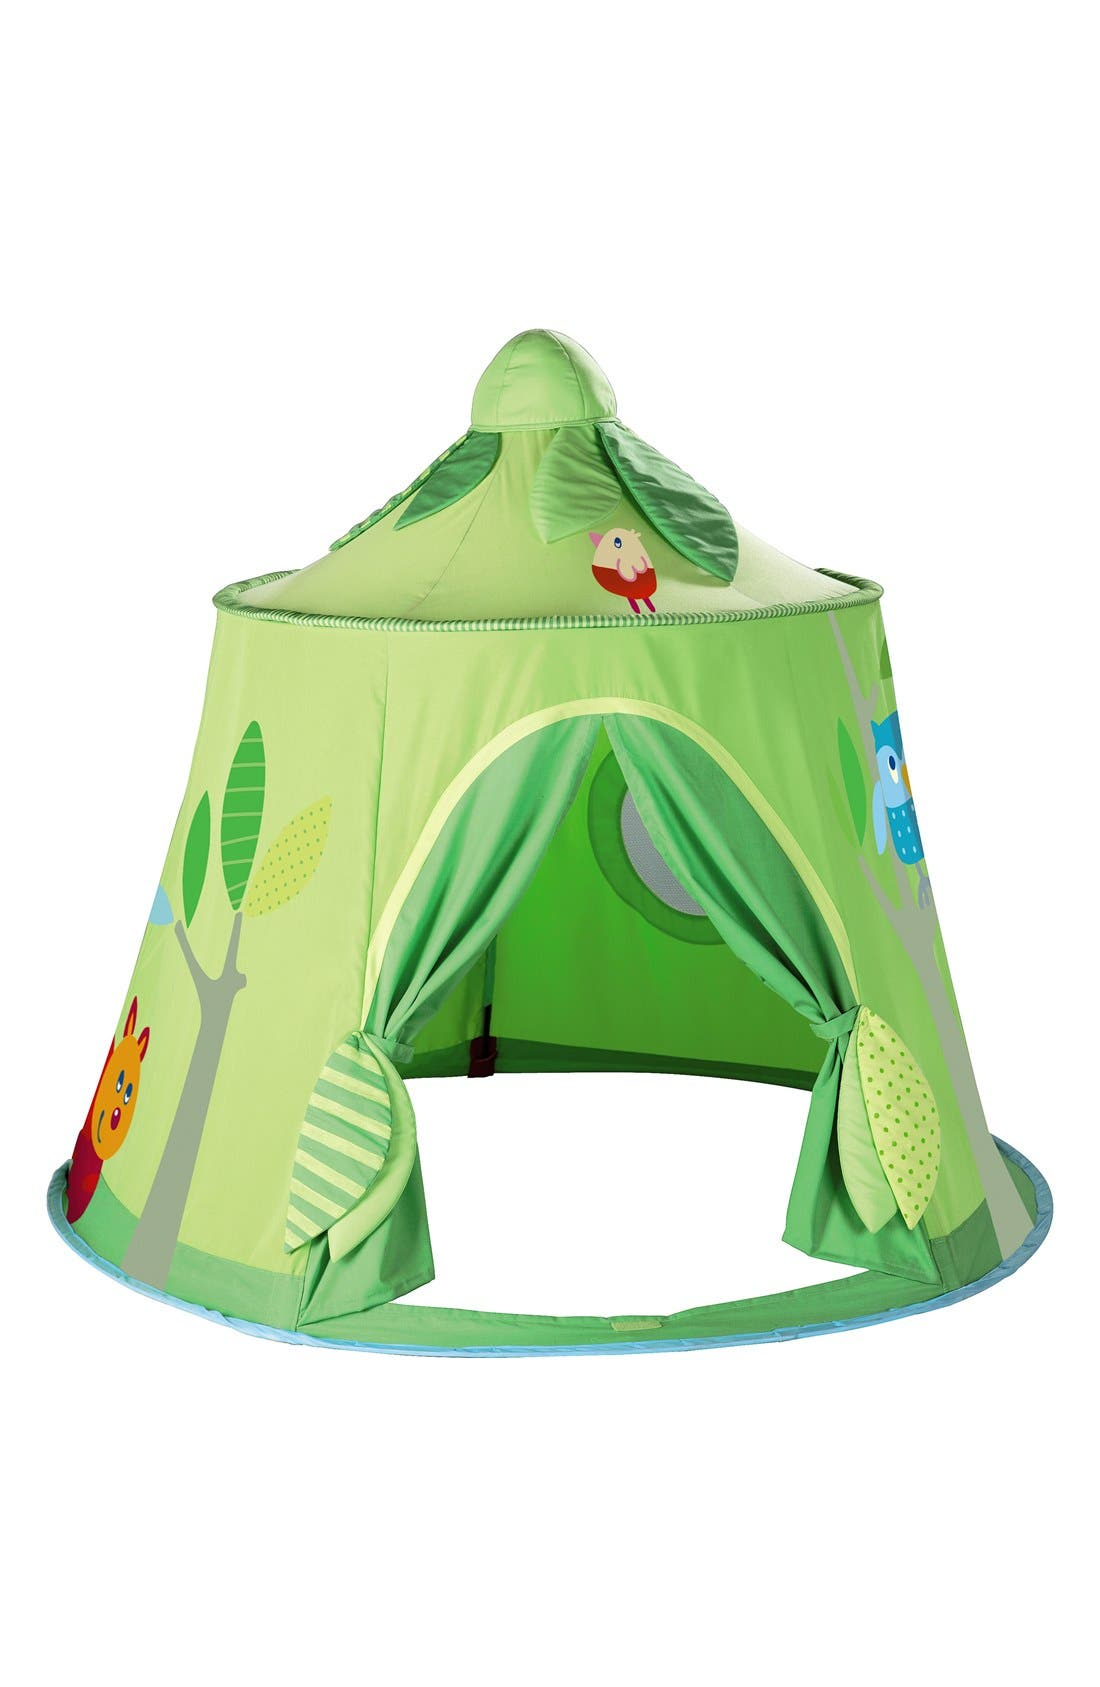 HABA 'Magic Forest' Play Tent